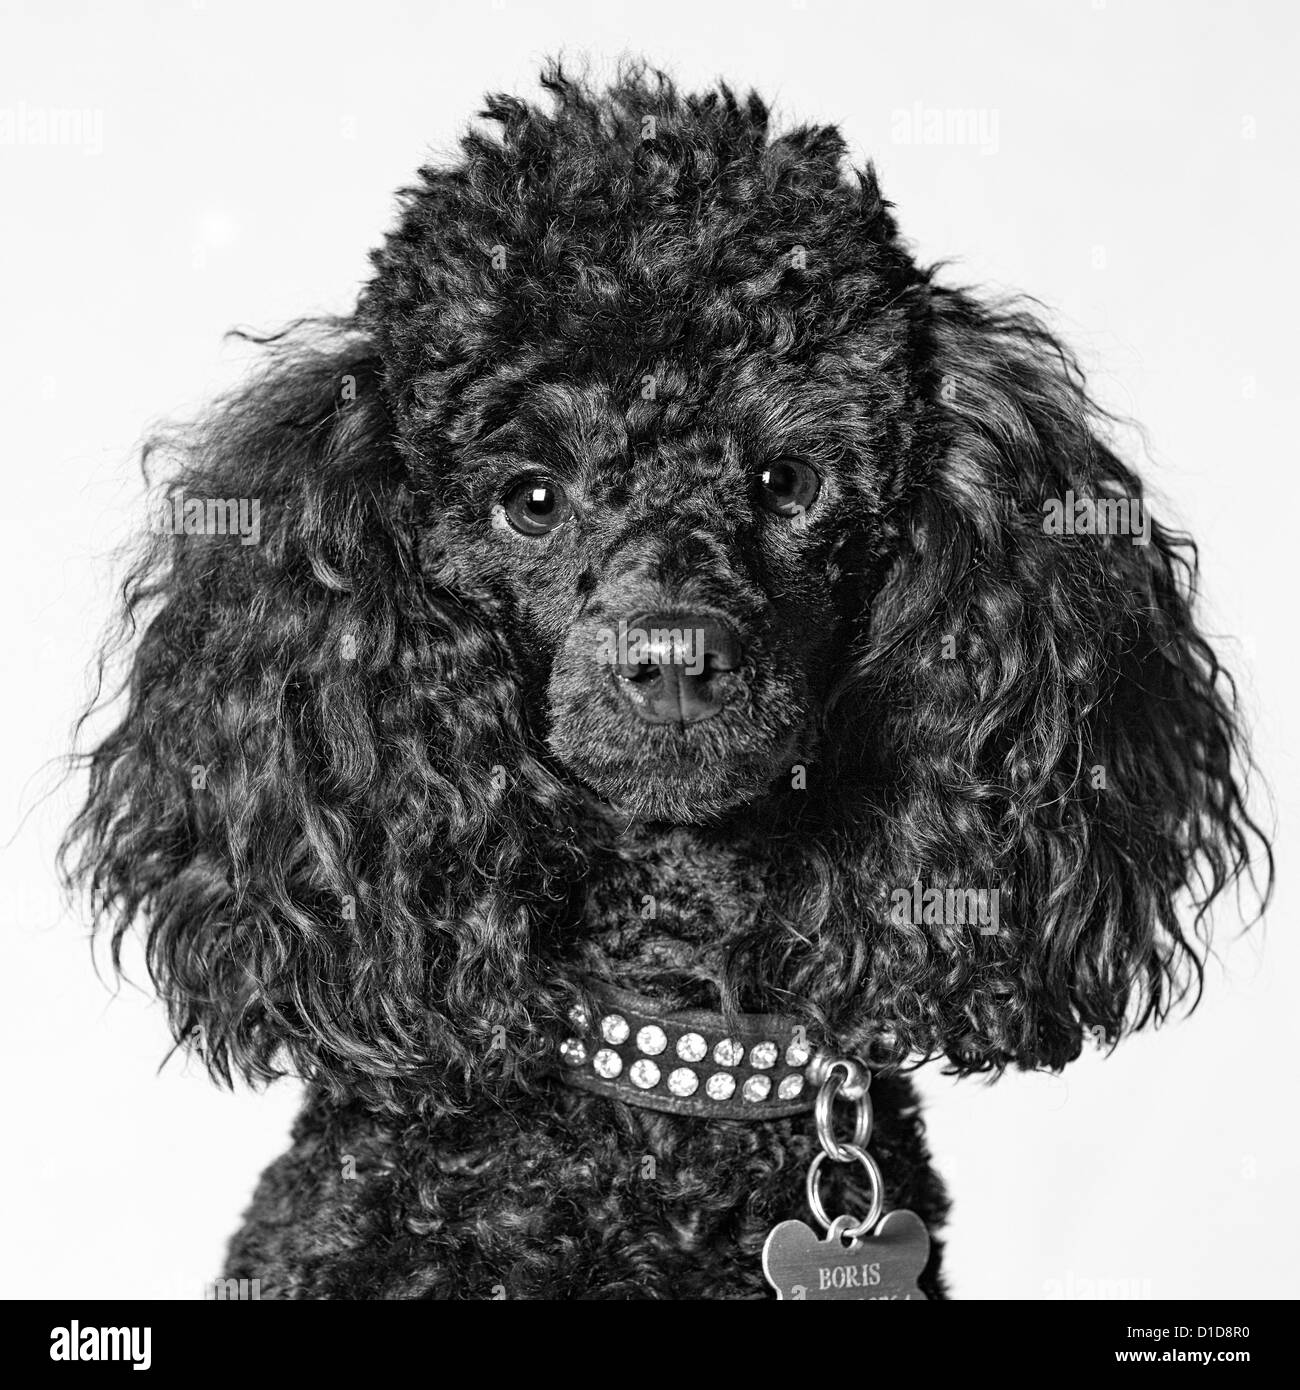 Young toy poodle head shot, monochrome - Stock Image